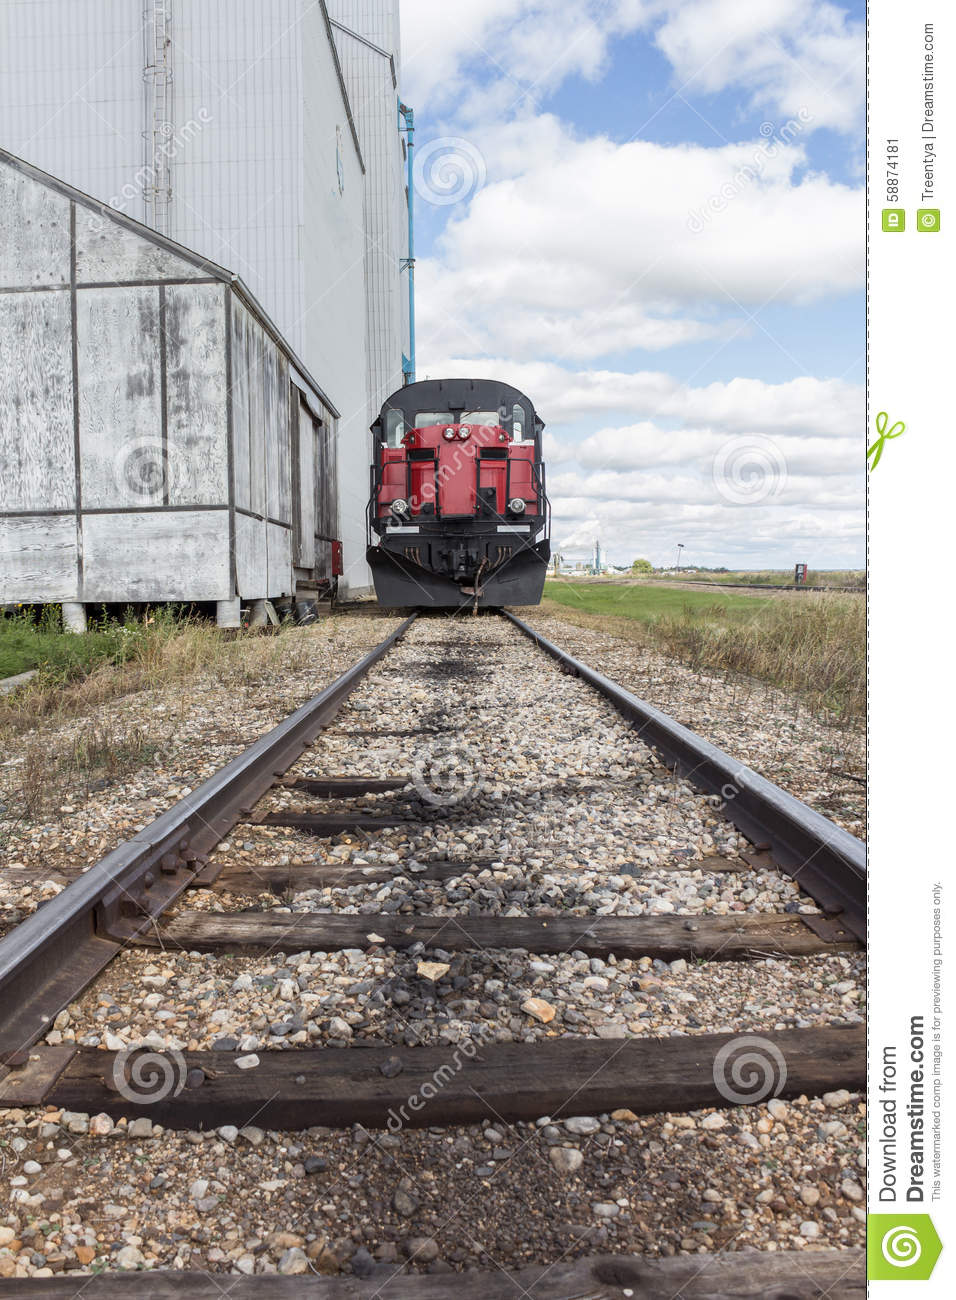 Front Of A Train On A Railway Track Stock Image - Image of voyage